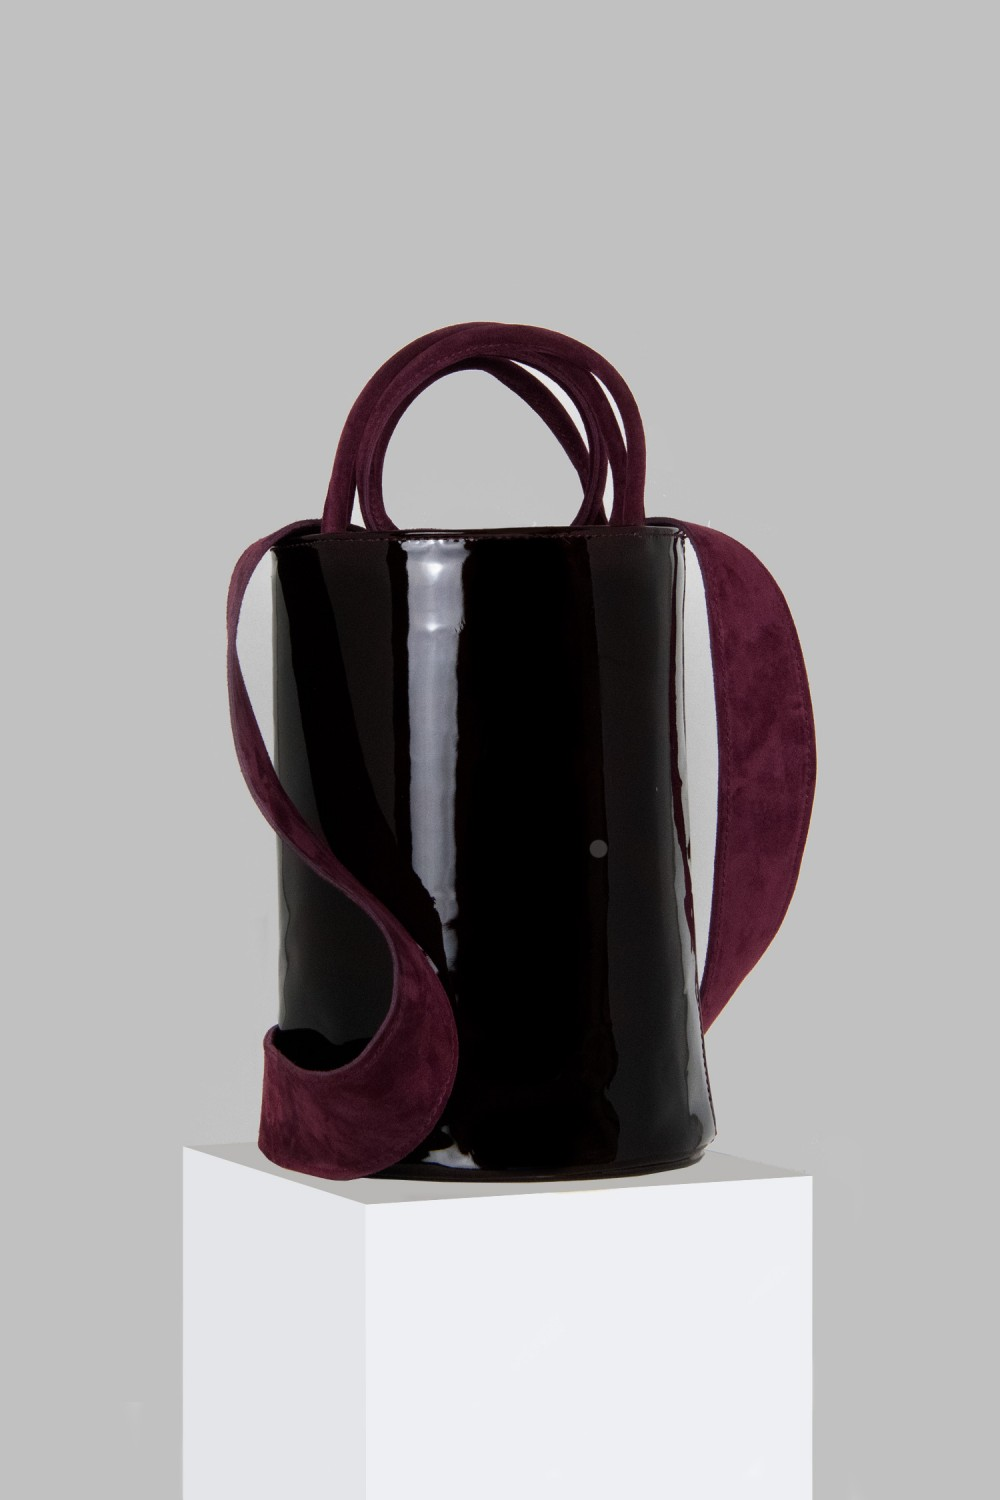 XL Kyklos Maroon Patent Leather Bag